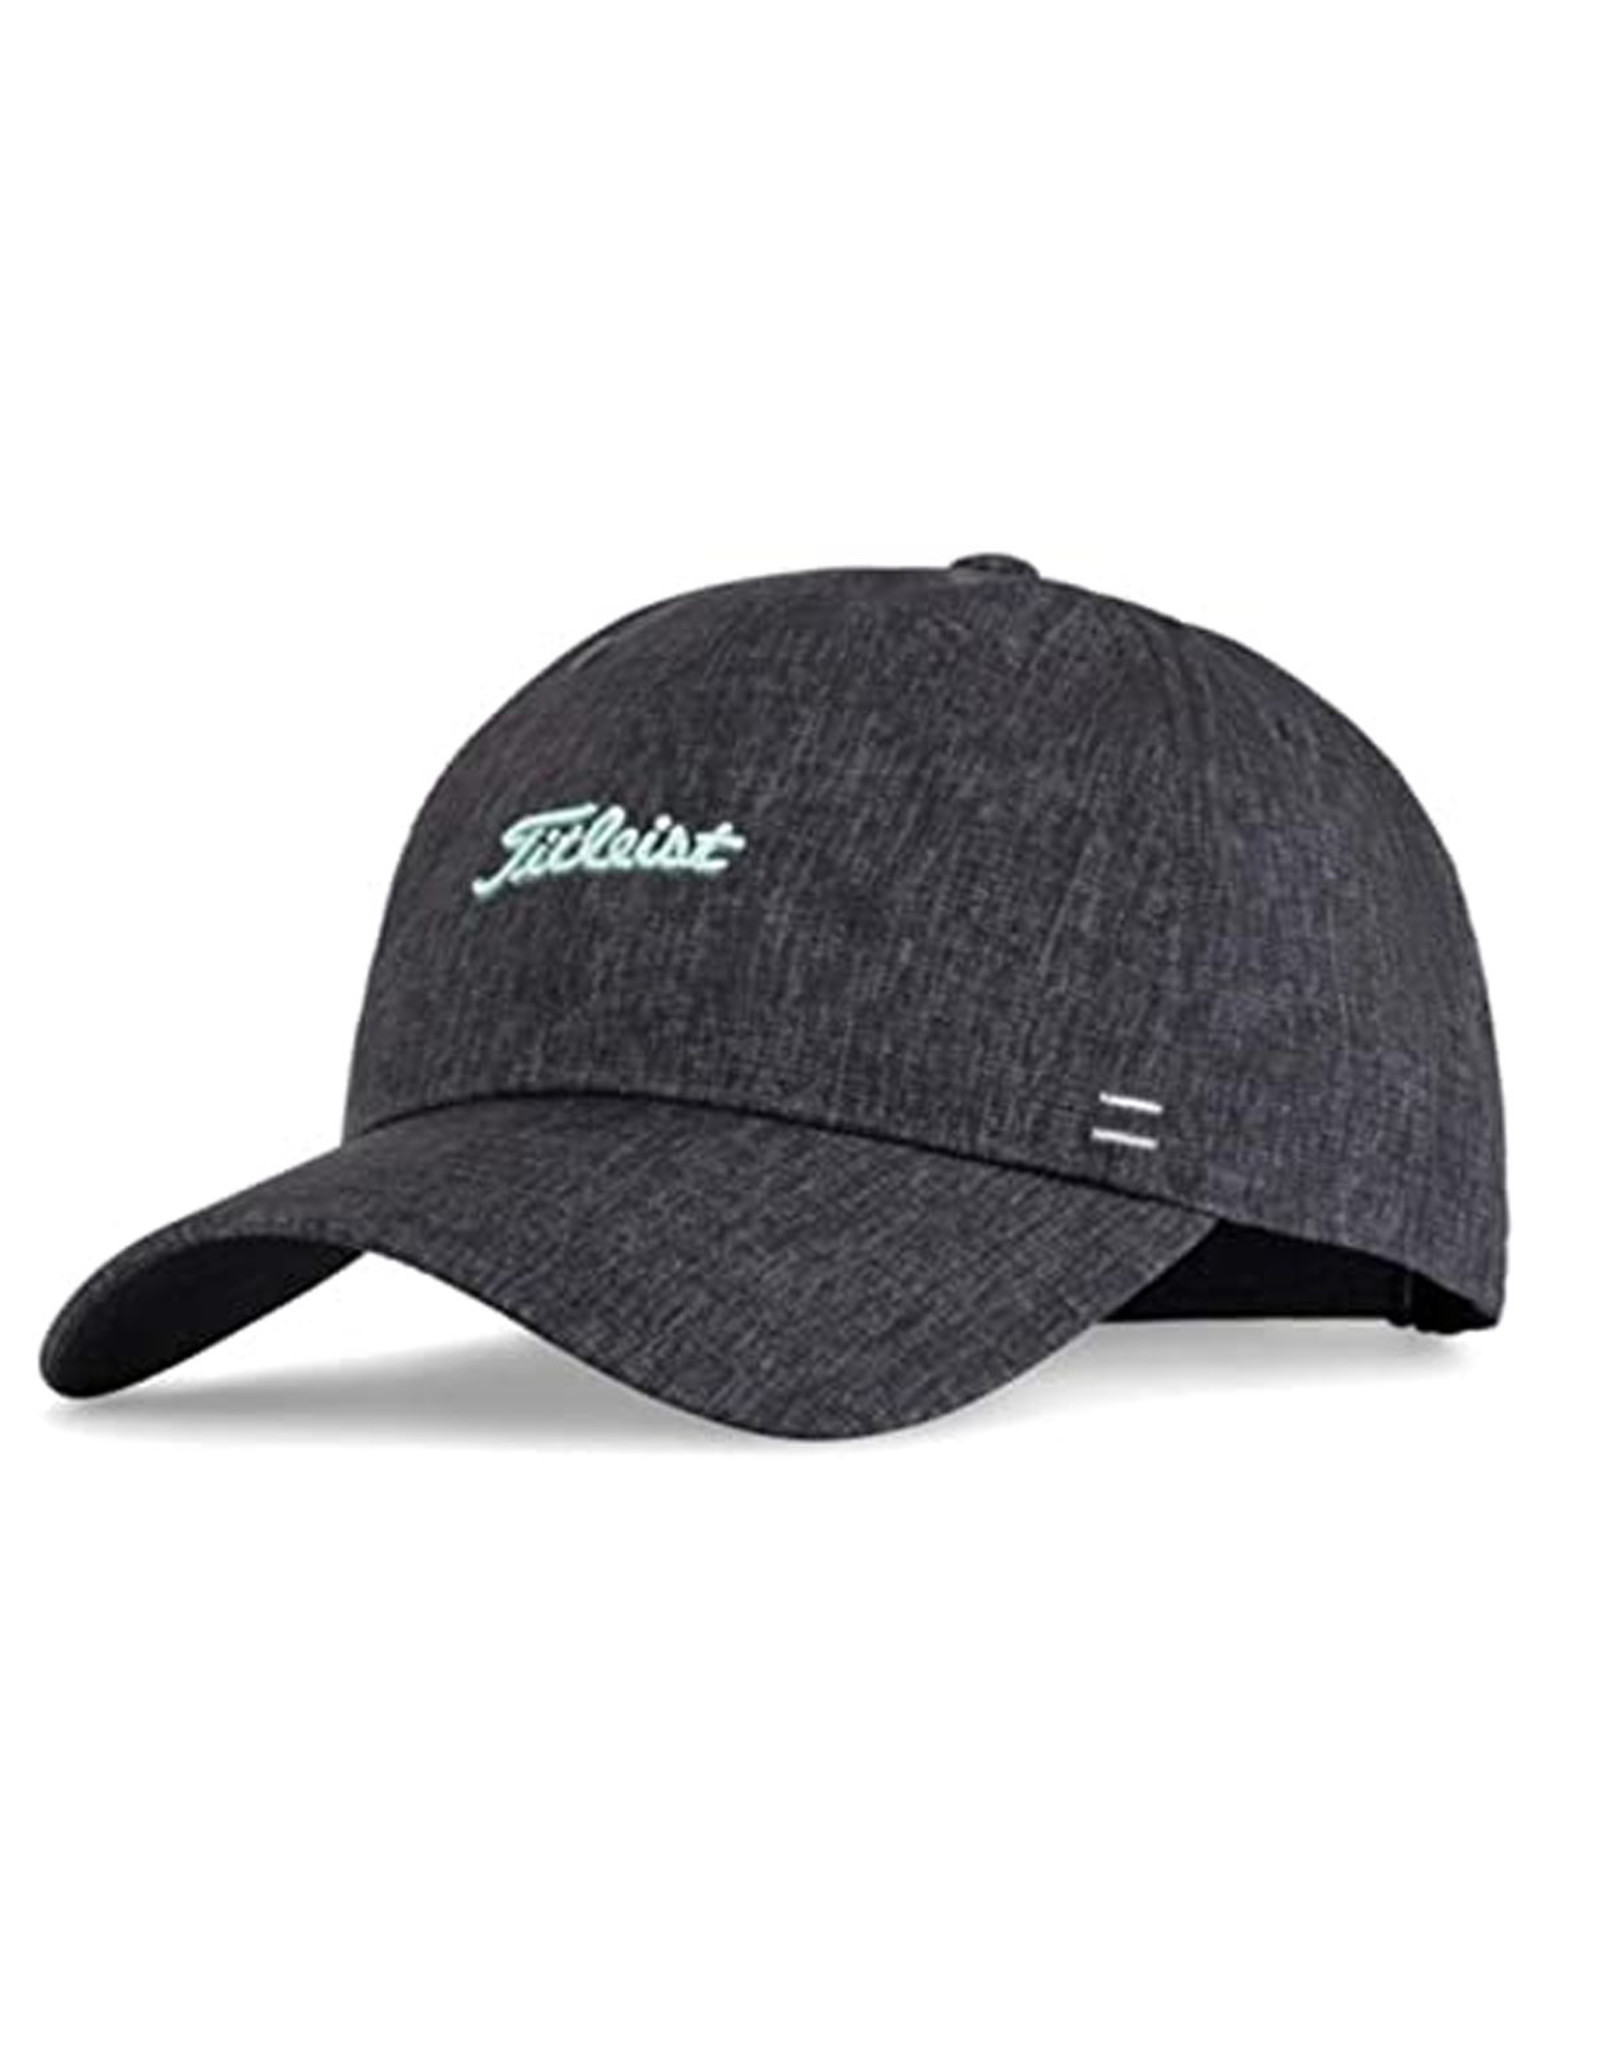 Titleist Titleist Women's Nantucket Heather Hat